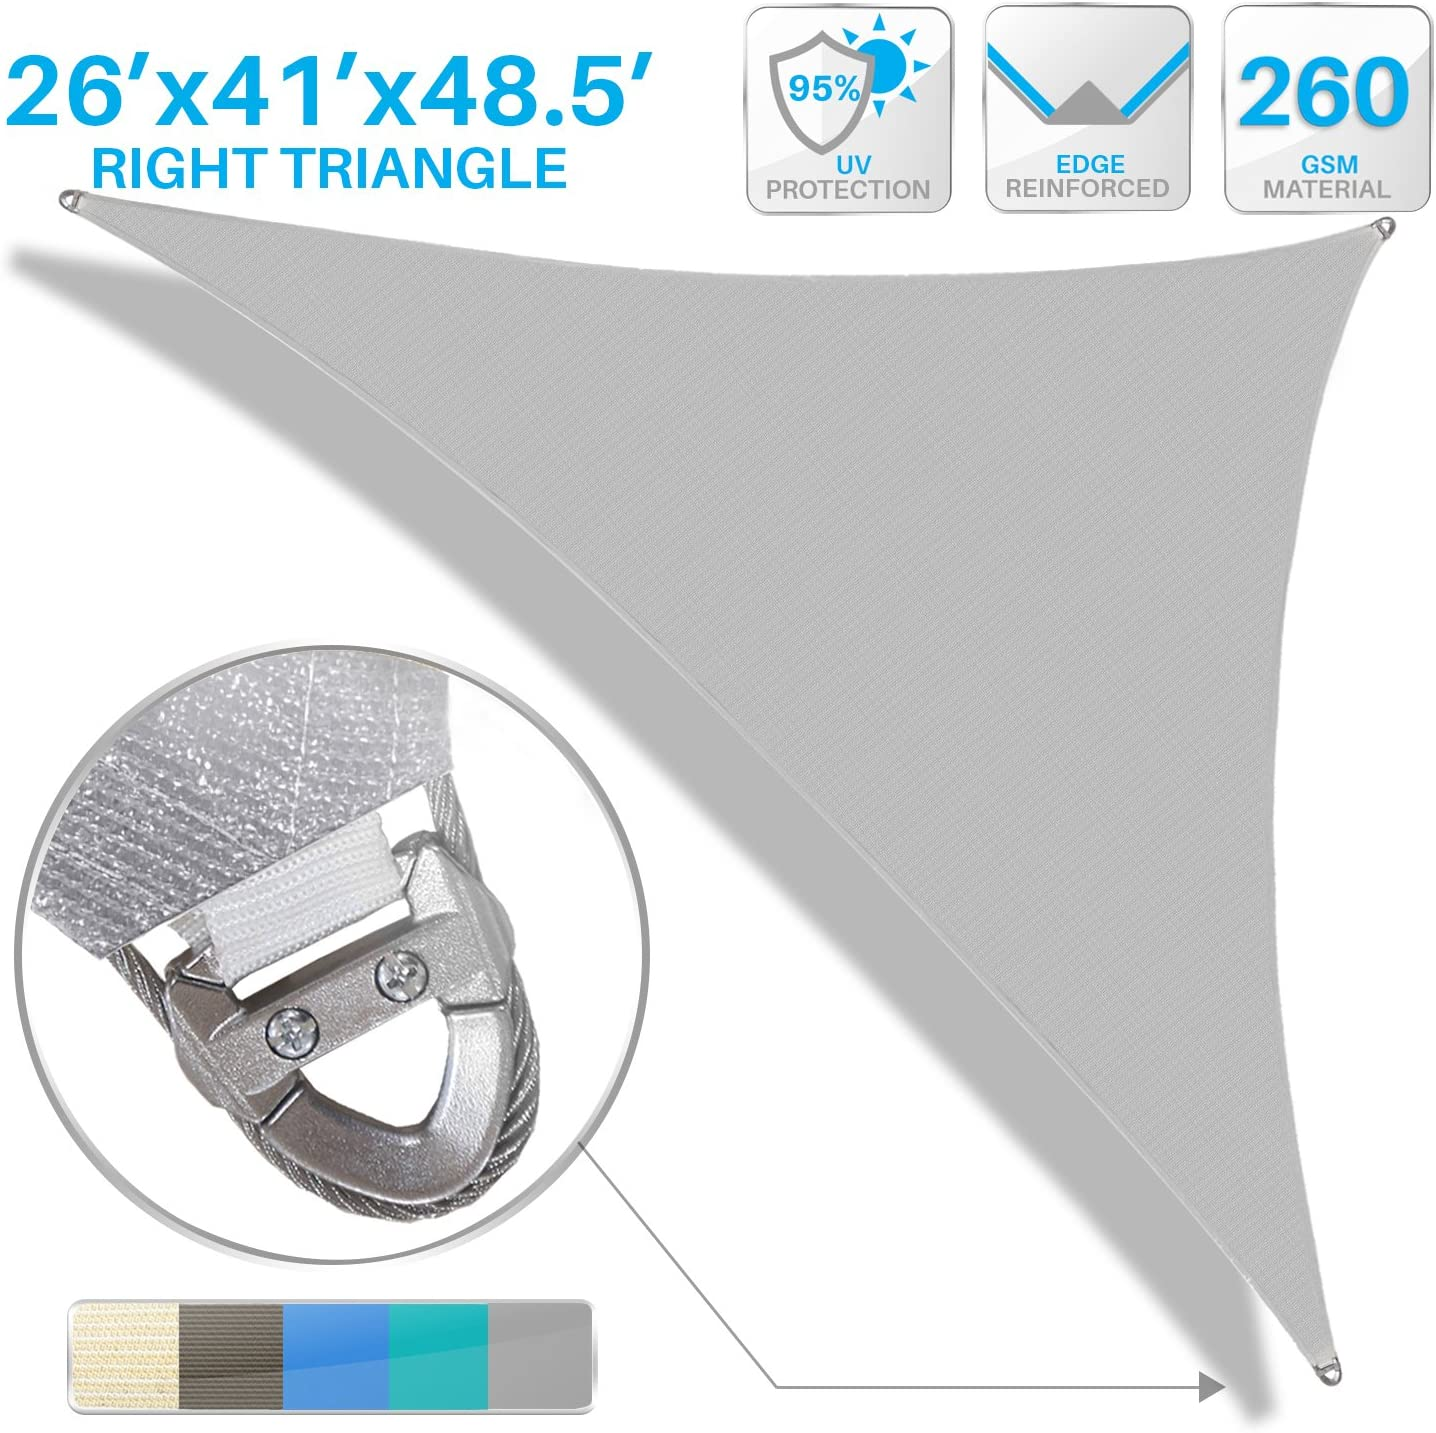 Patio Large Sun Shade Sail 26\' x 41\' x 49\' Right Triangle Heavy Duty Strengthen Durable Outdoor Canopy UV Block Fabric A-Ring Design Metal Spring Reinforcement 7 Year Warranty -Light Gray 81MgdAedIXL